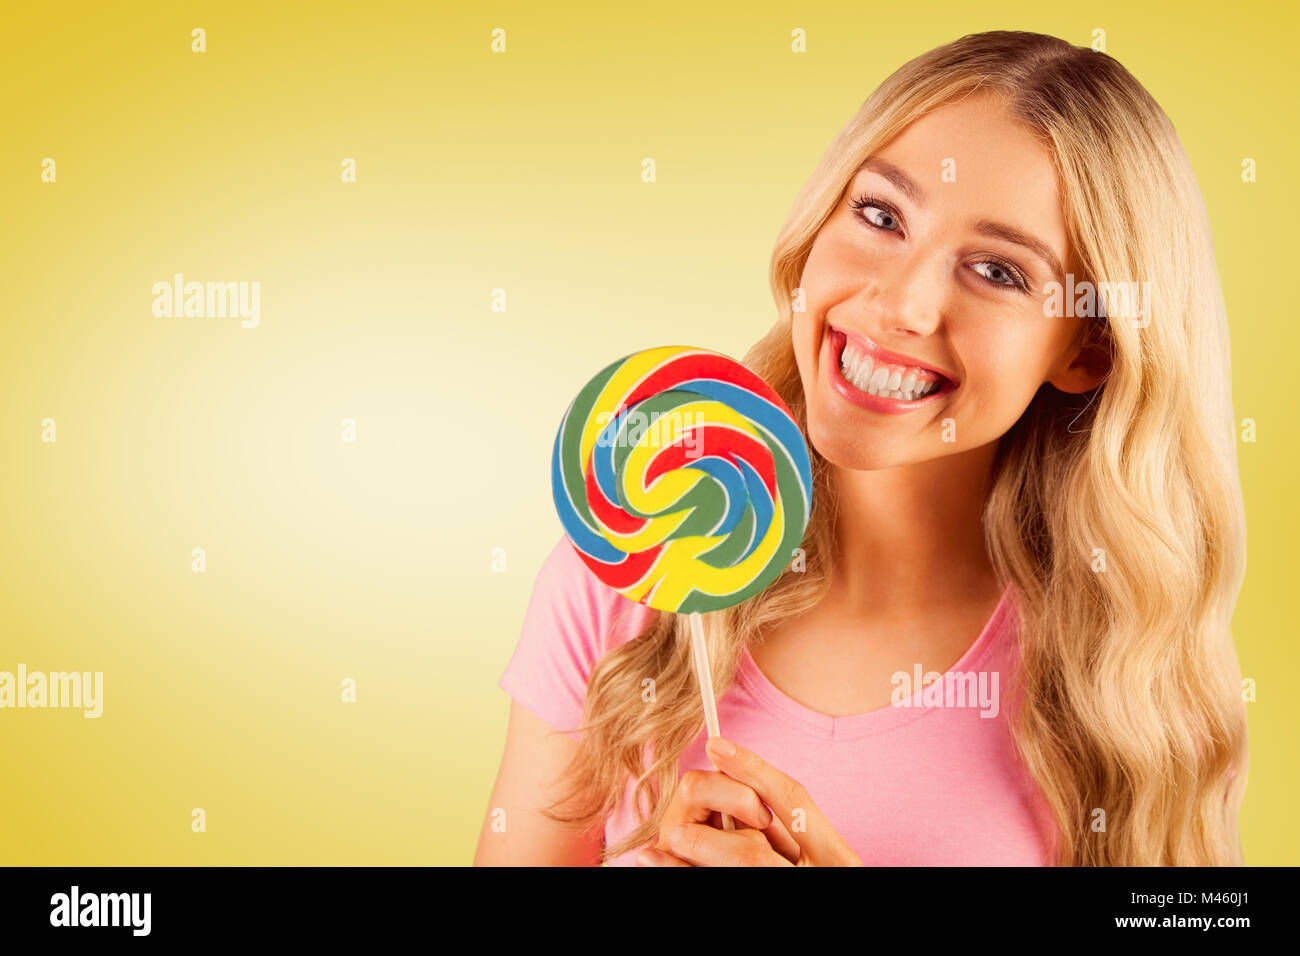 Composite image of a beautiful woman holding a giant lollipop - Stock Image